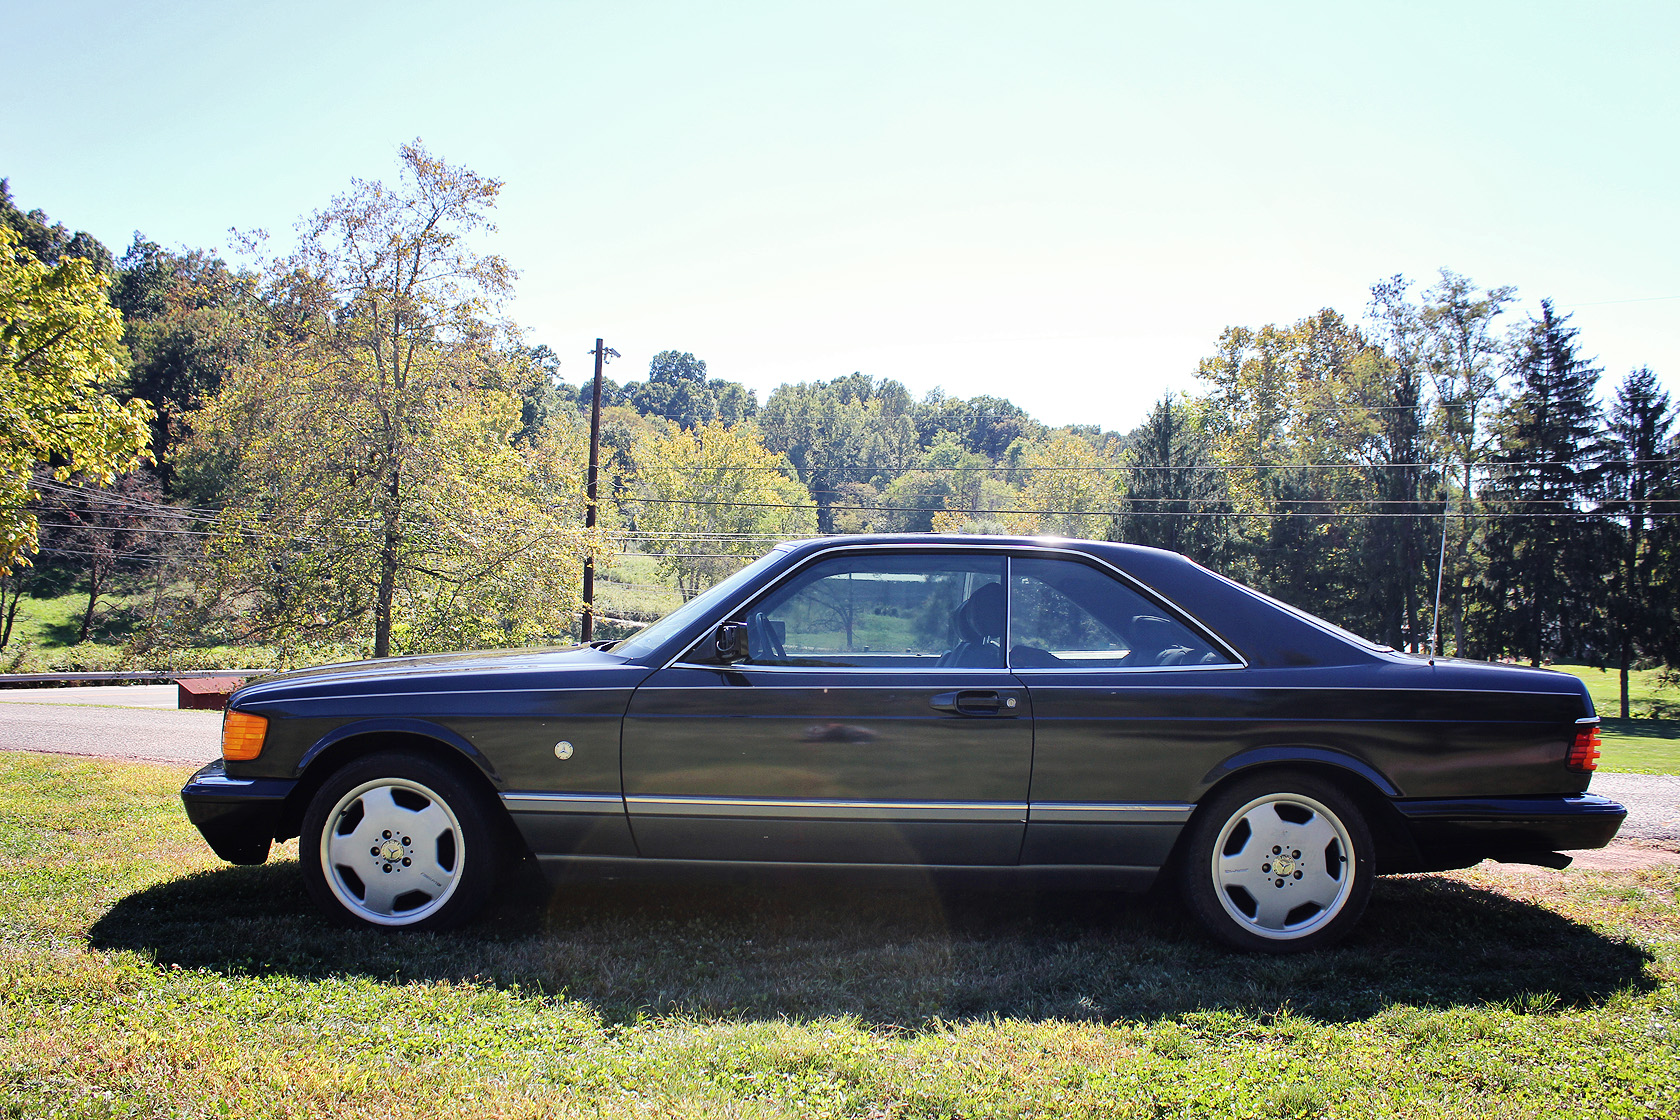 Buy used 1986 mercedes benz 560 sec base coupe 5 6l in for 1986 mercedes benz 560 sec